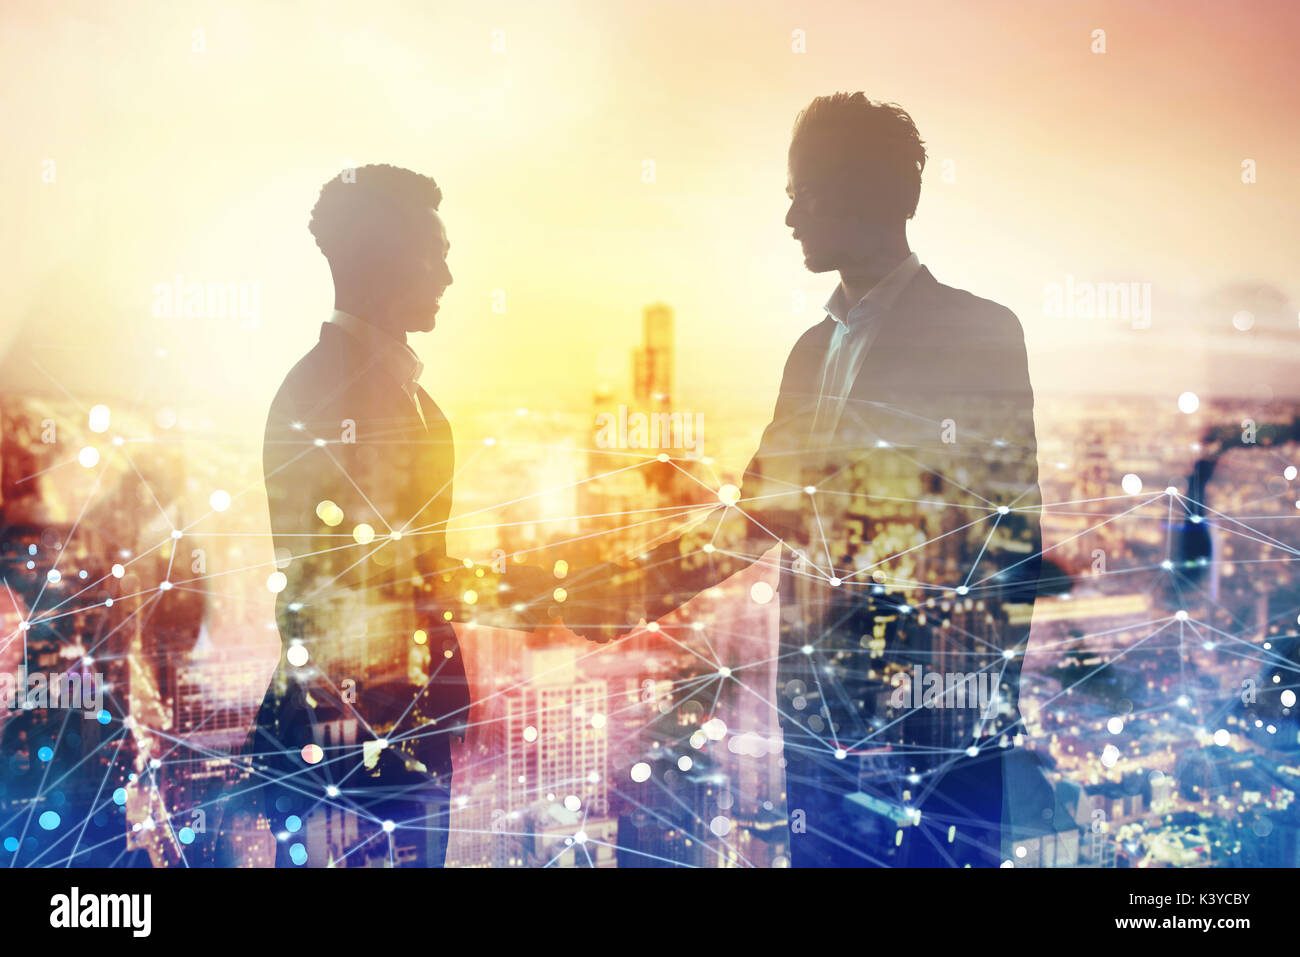 Handshake of two businessperson in office with network effect. concept of partnership and teamwork - Stock Image